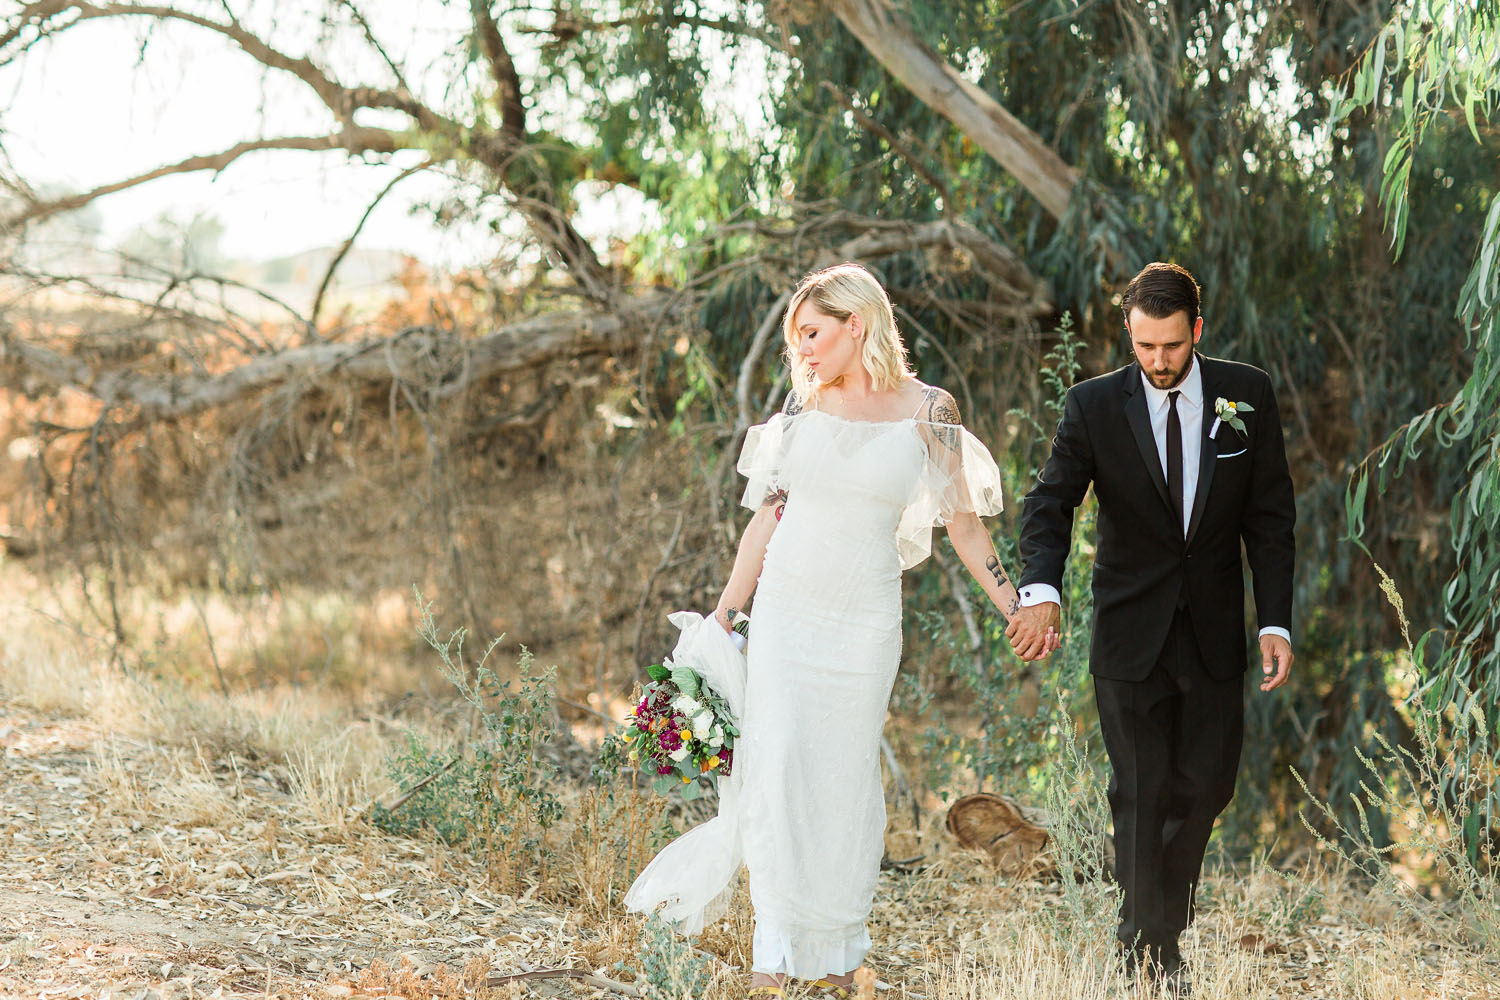 The Photege - Elegant Boho Wedding on Suburu Farm in Bakersfield California- Cassie and Darin Buoni-3013